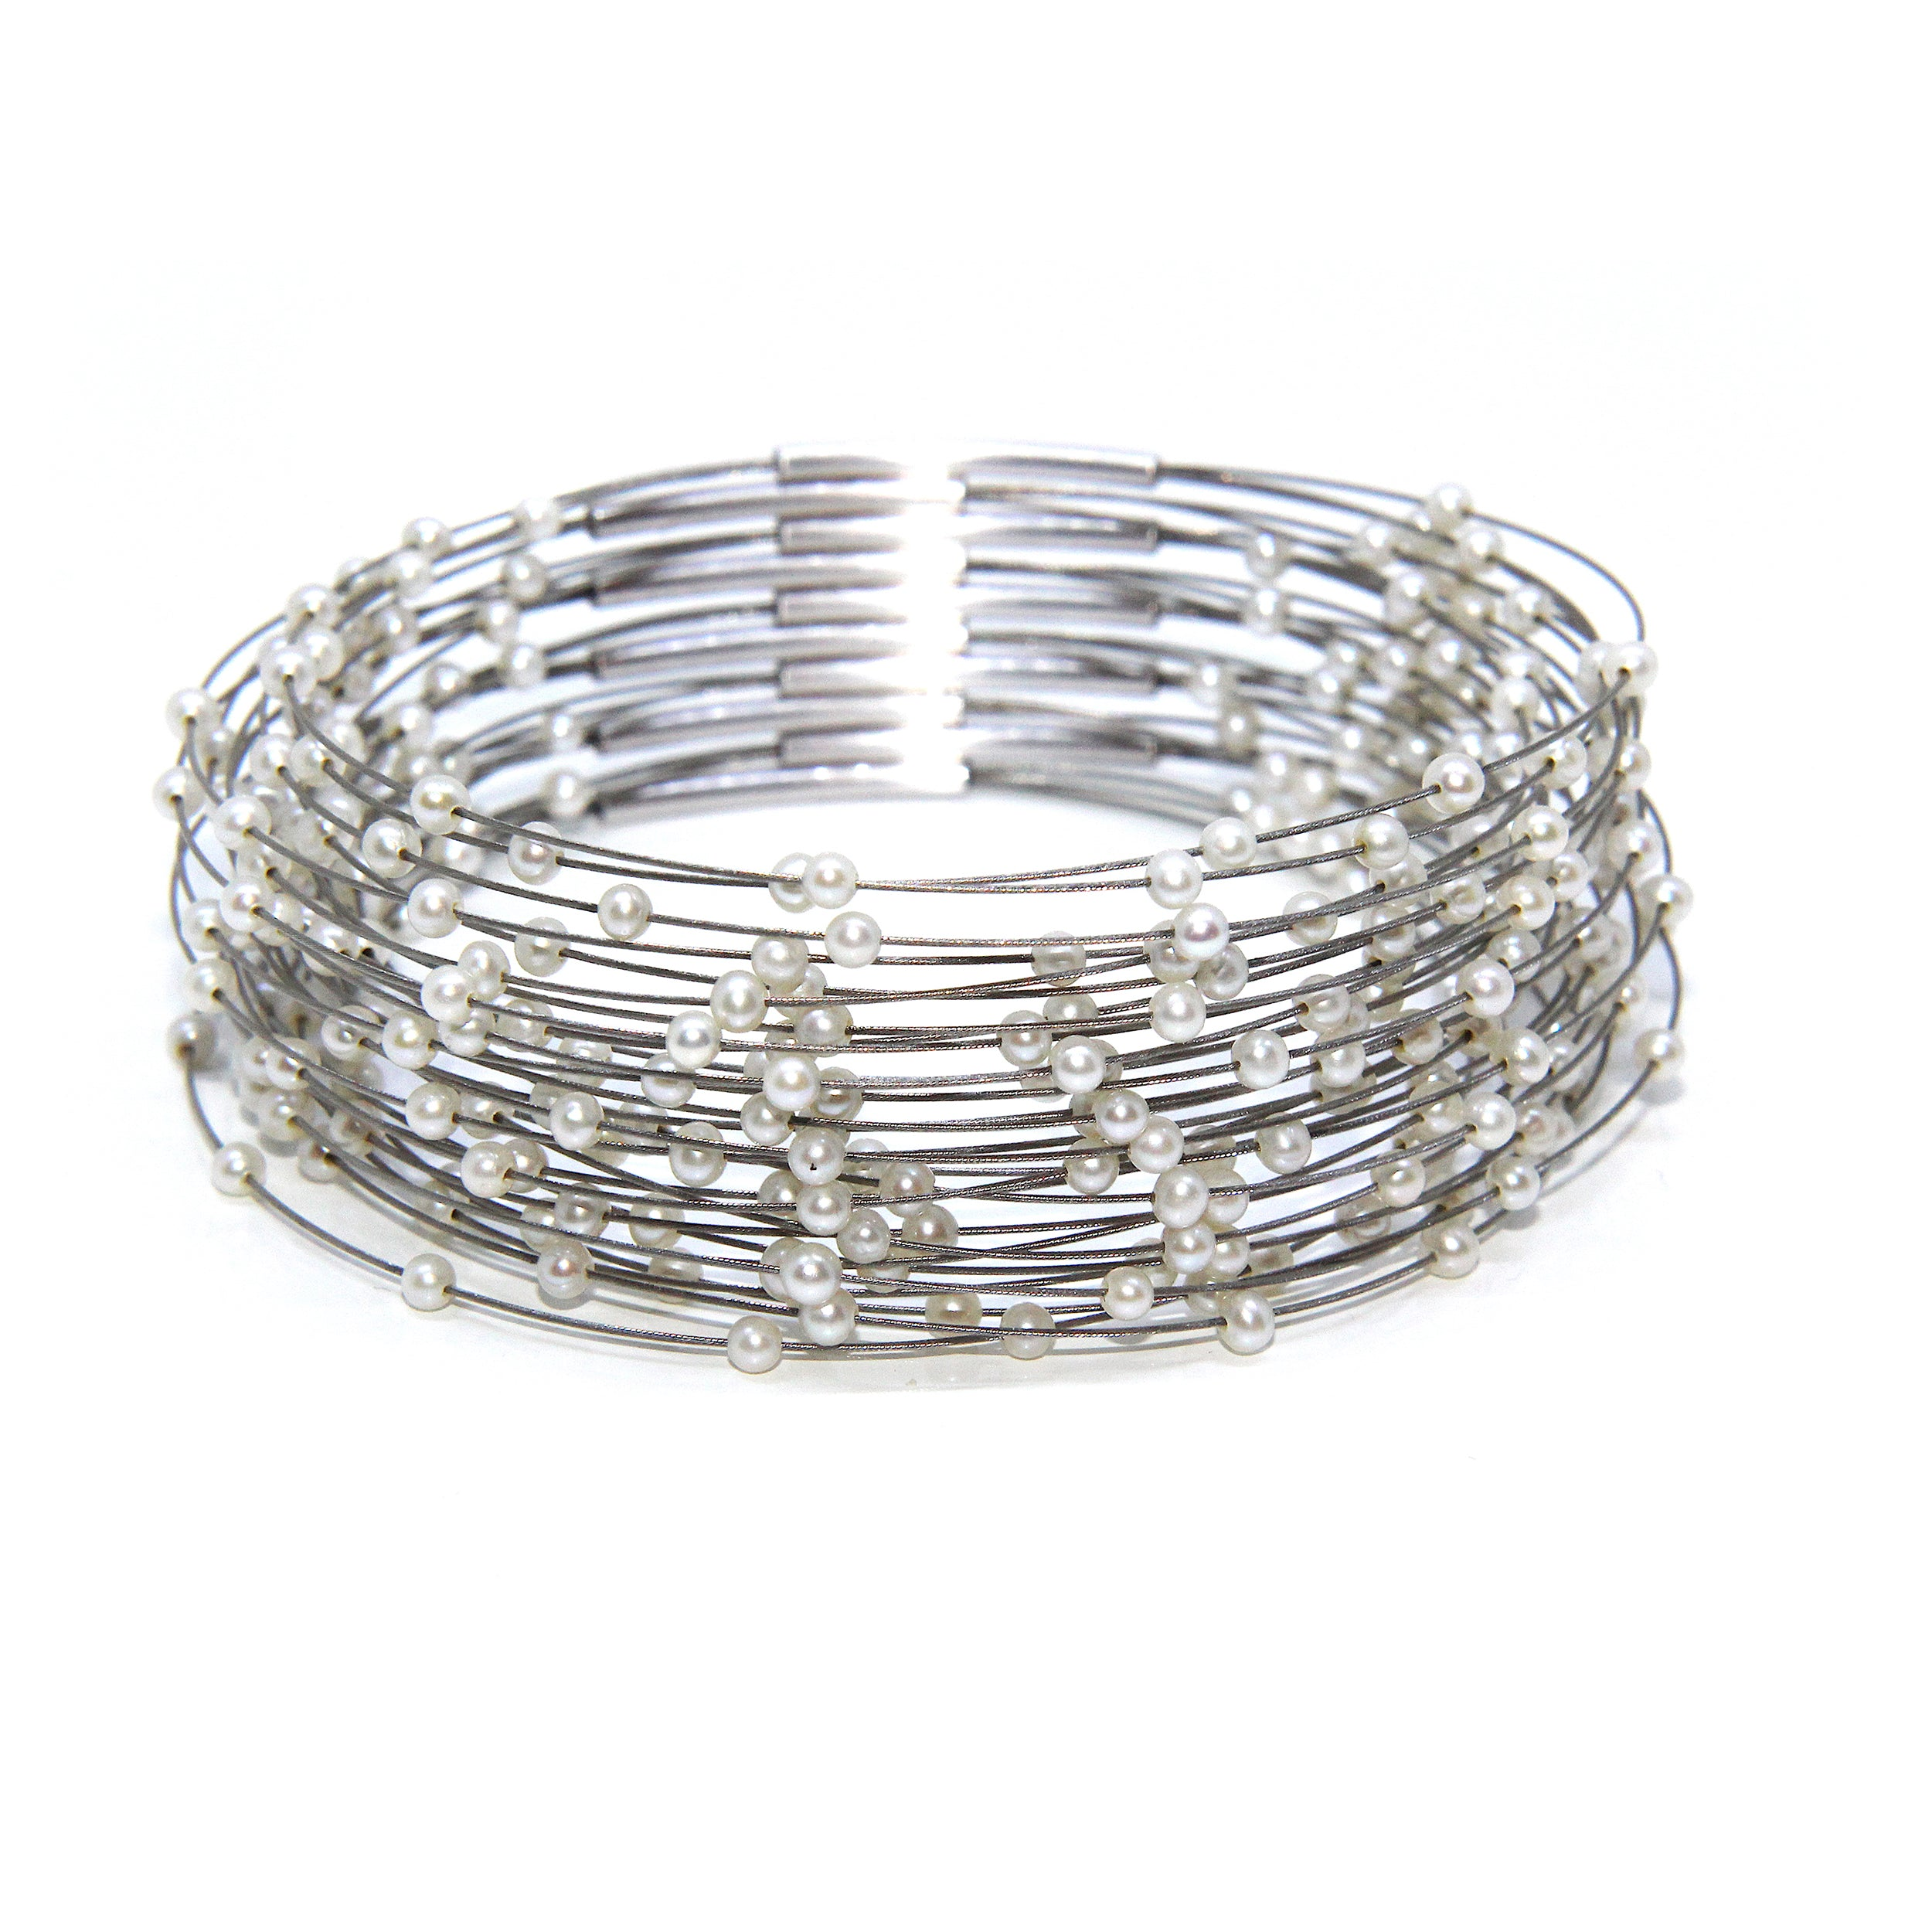 bangle hendrix products wouters sterling pure s silver textured bracelet